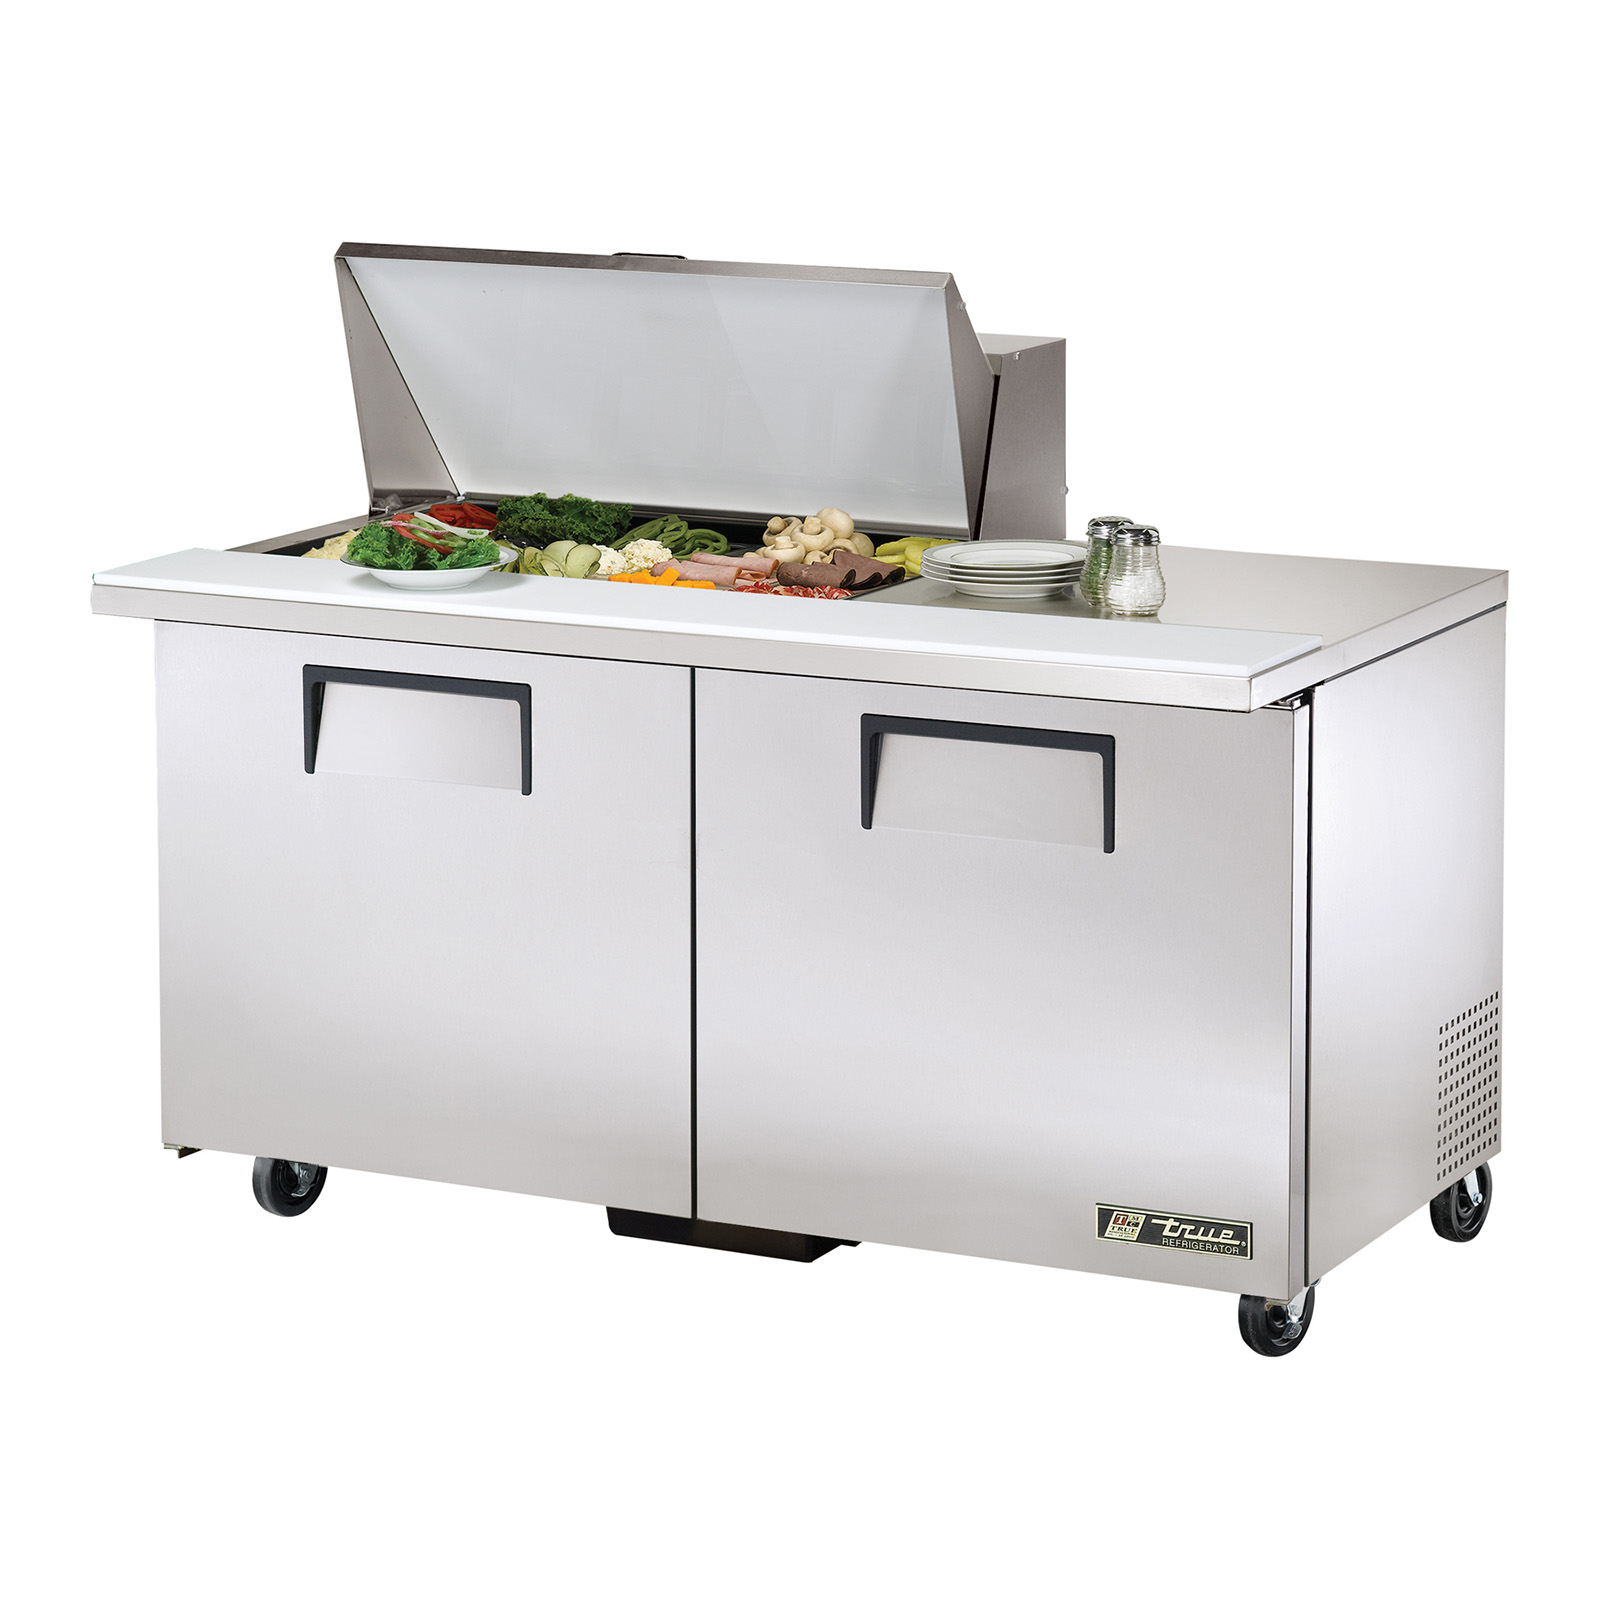 TSSU-60-15M-B True - Mega Top Sandwich/Salad Unit (15) 1/6 size (4